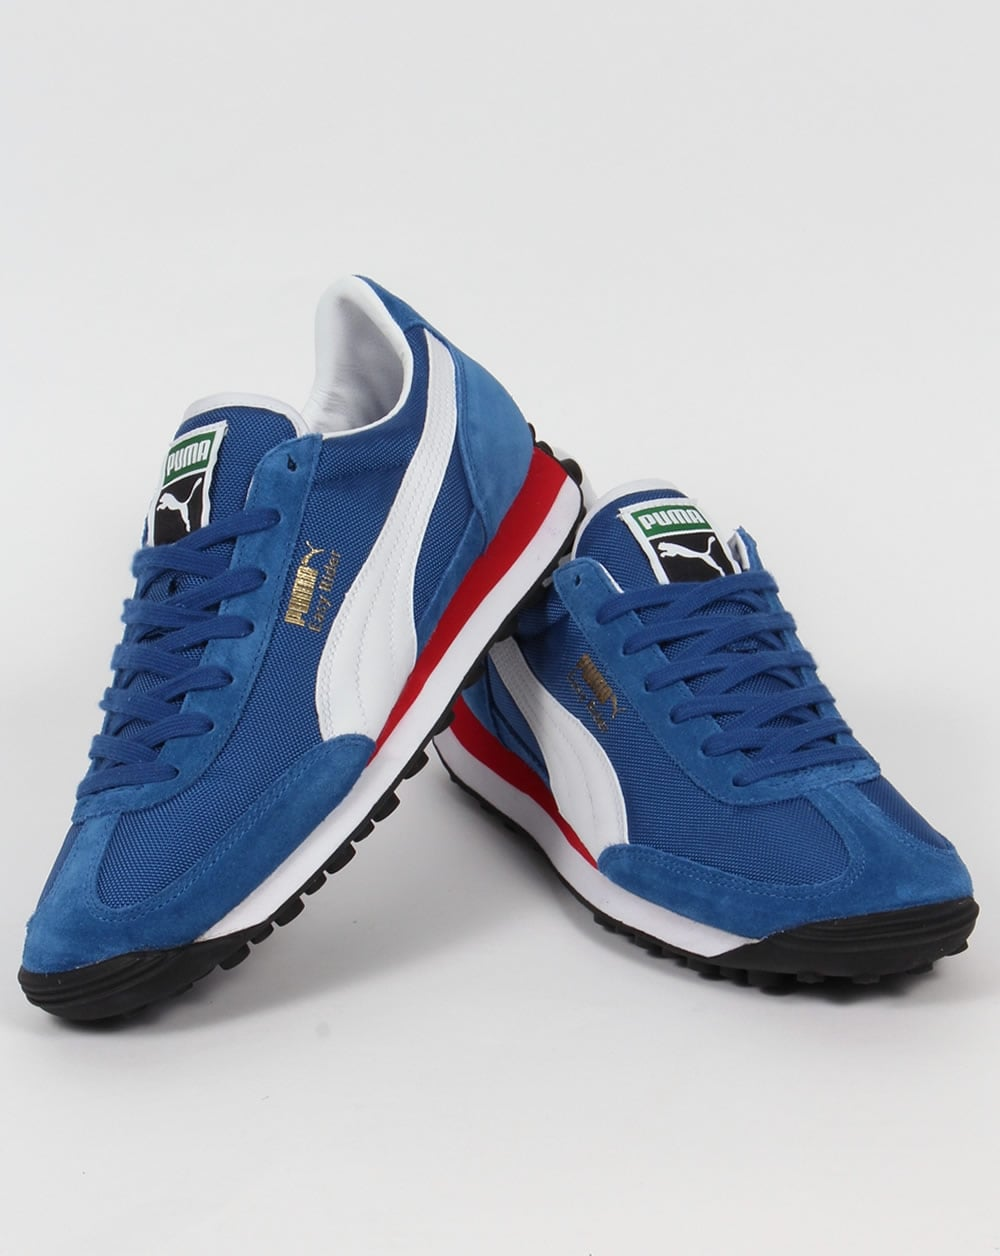 retro puma trainers